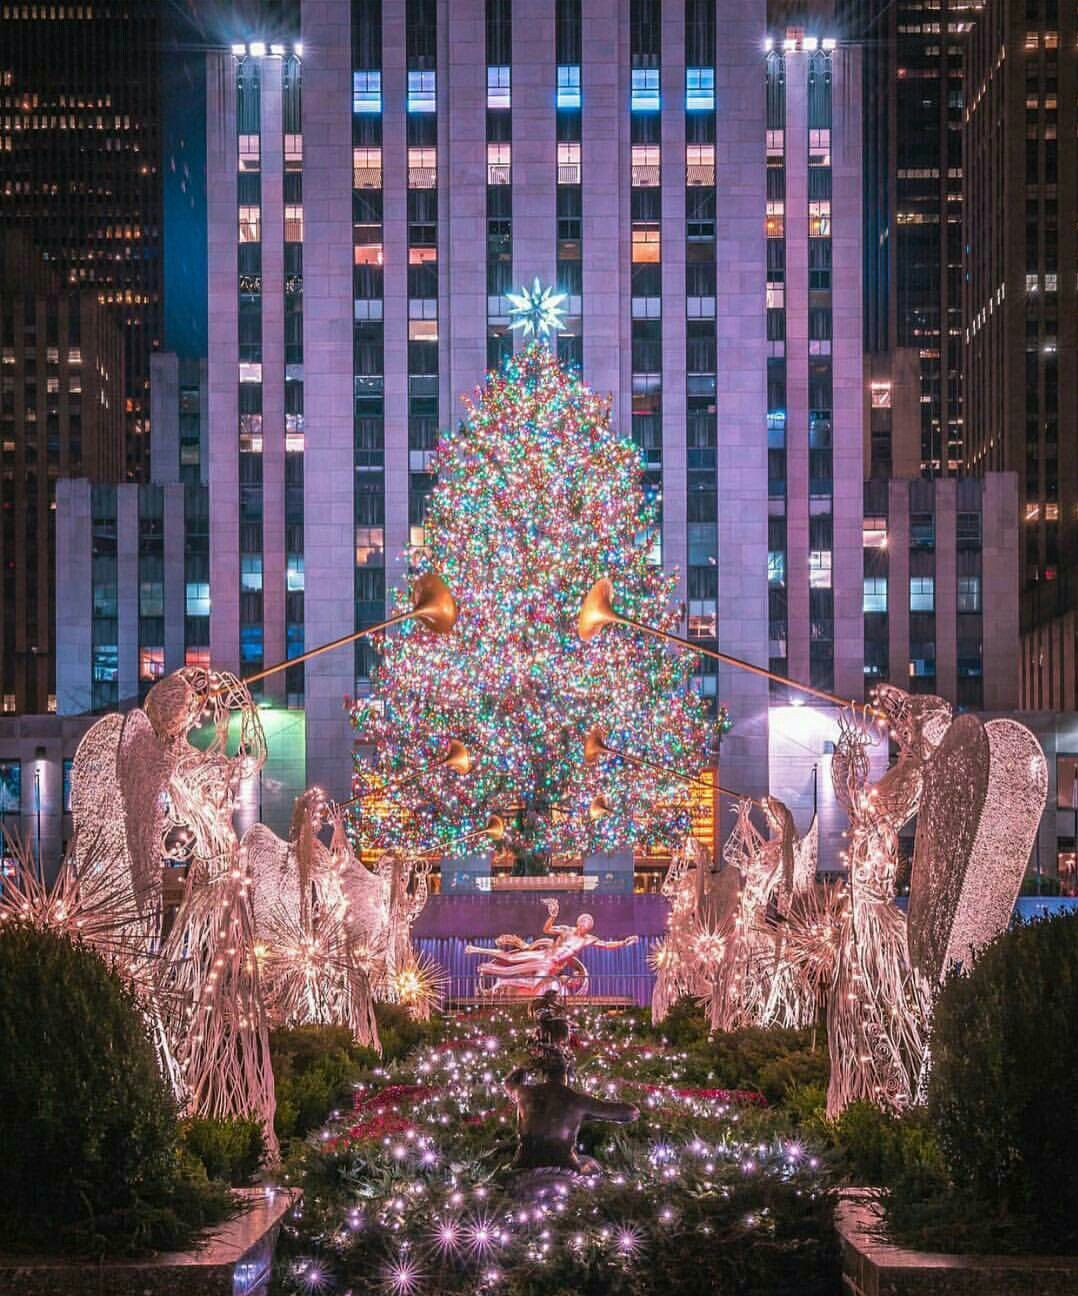 The Most Beautiful Christmas Trees In The World - Vestellite